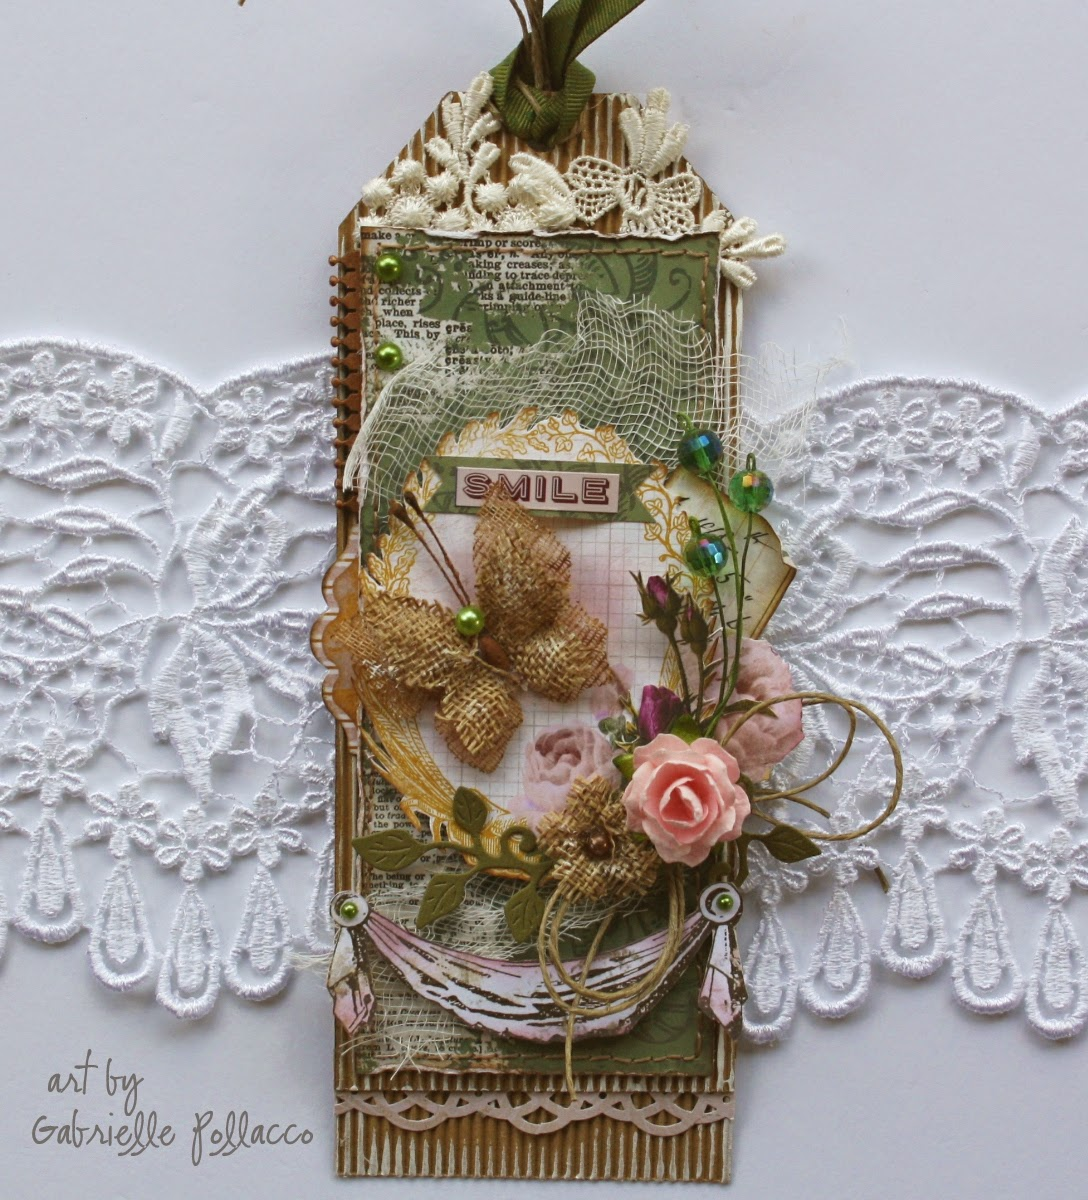 Tag by Gabrielle Pollacco using Bo Bunny 'Rose Cafe' collection